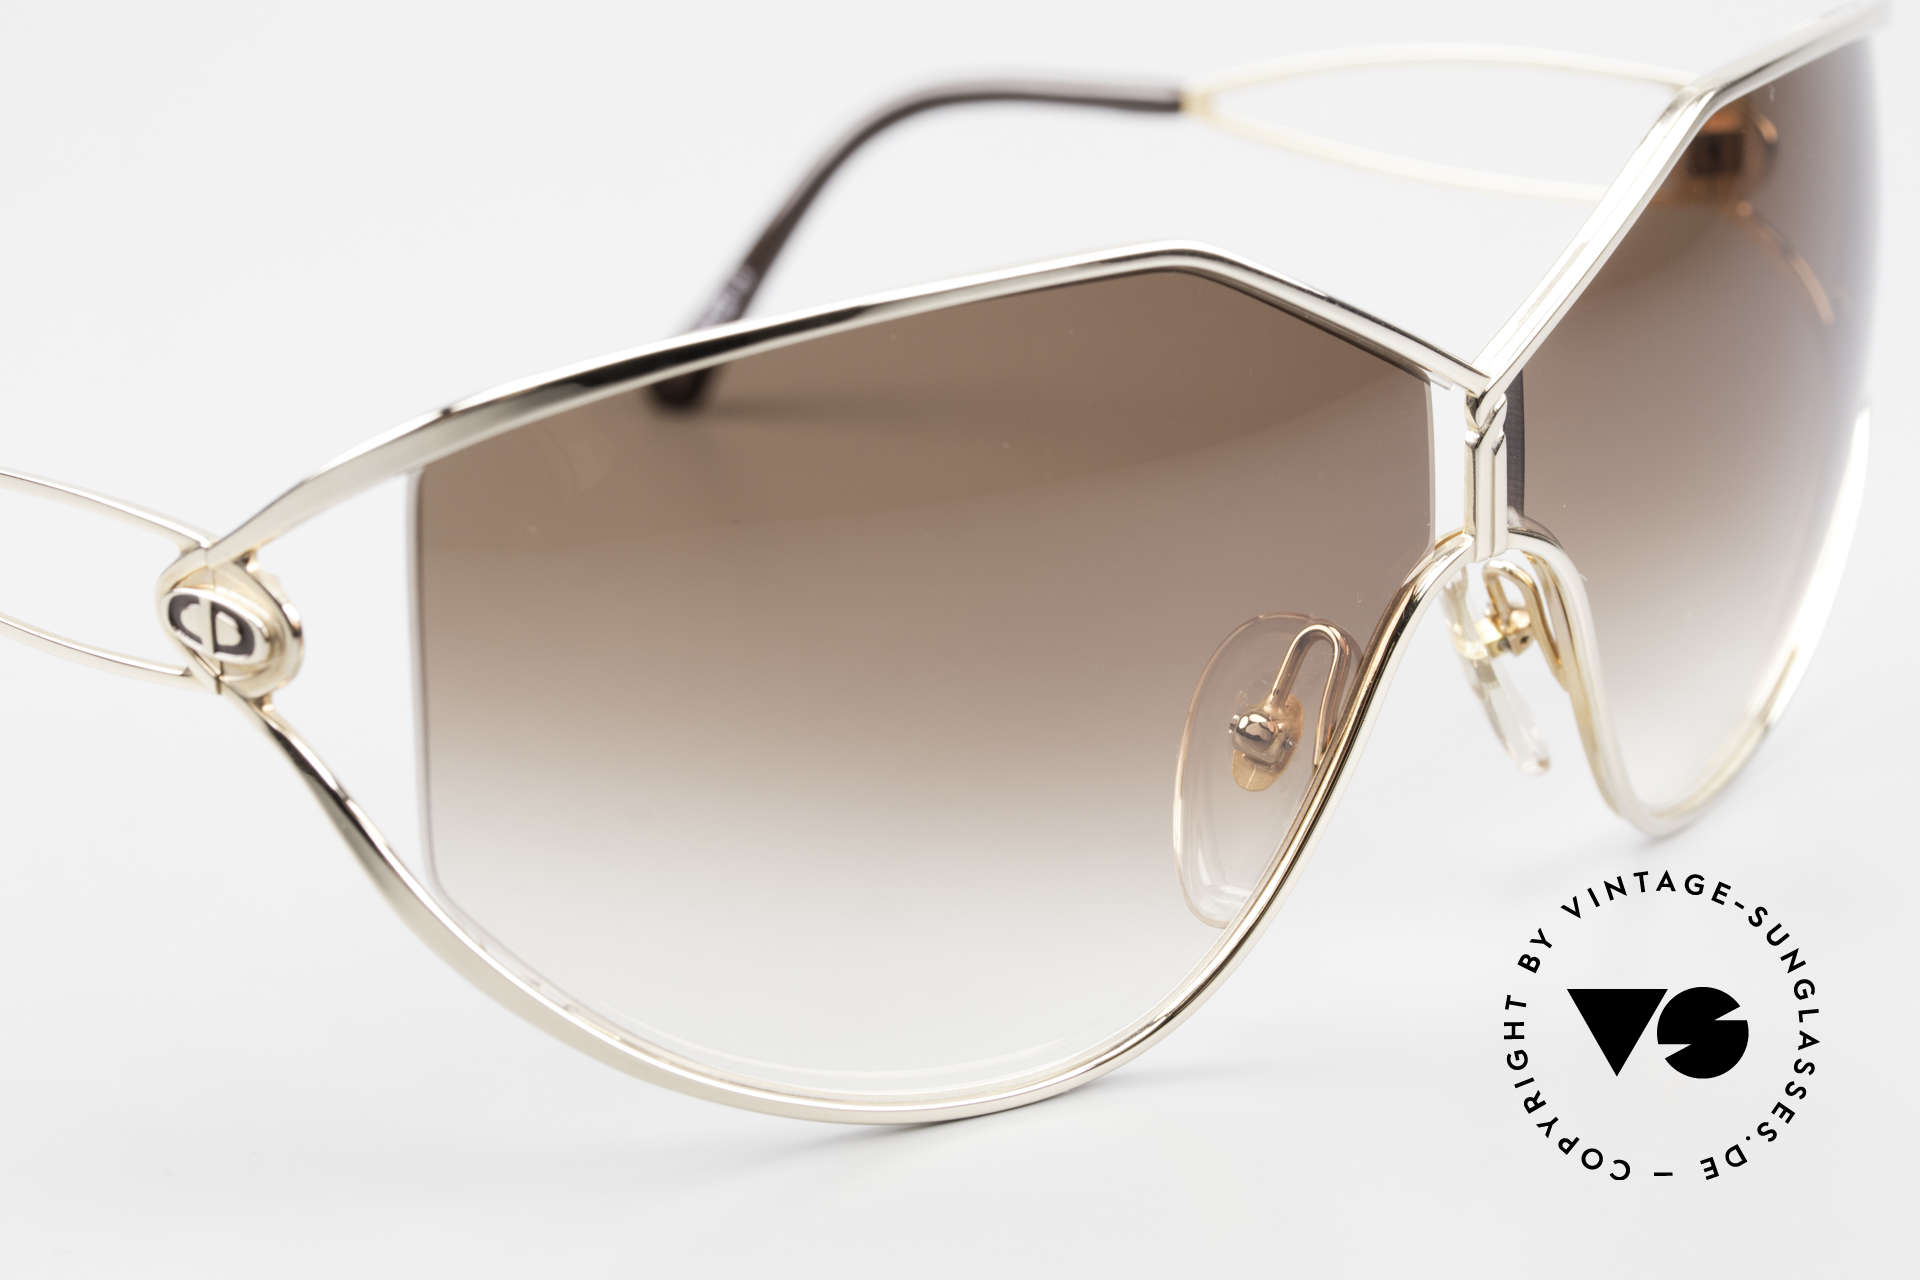 Christian Dior 2345 Ladies 90s Designer Sunglasses, NO retro fashion, but an old rarity from 1991, Made for Women